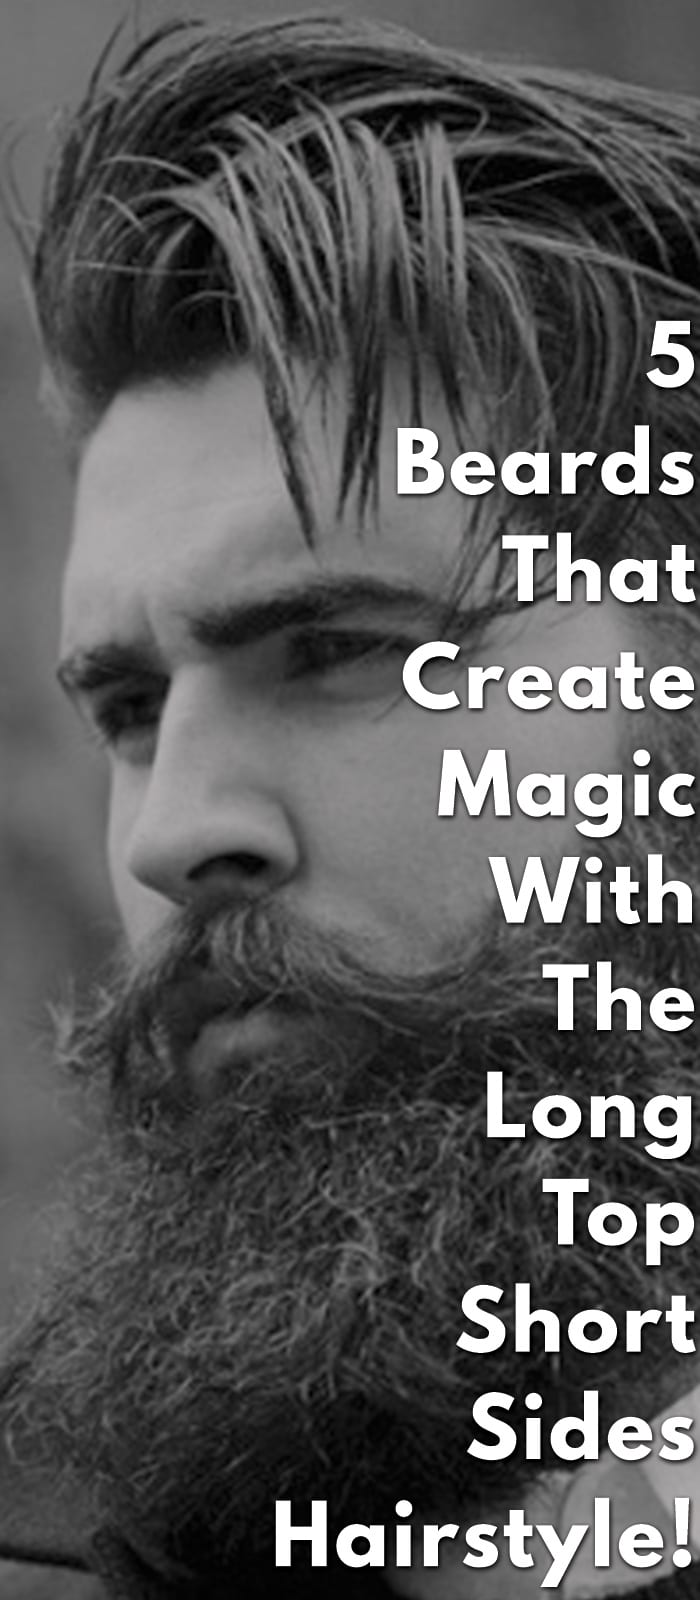 5-Beards-That-Create-Magic-With-The-Long-Top-Short-Sides-Hairstyle!.